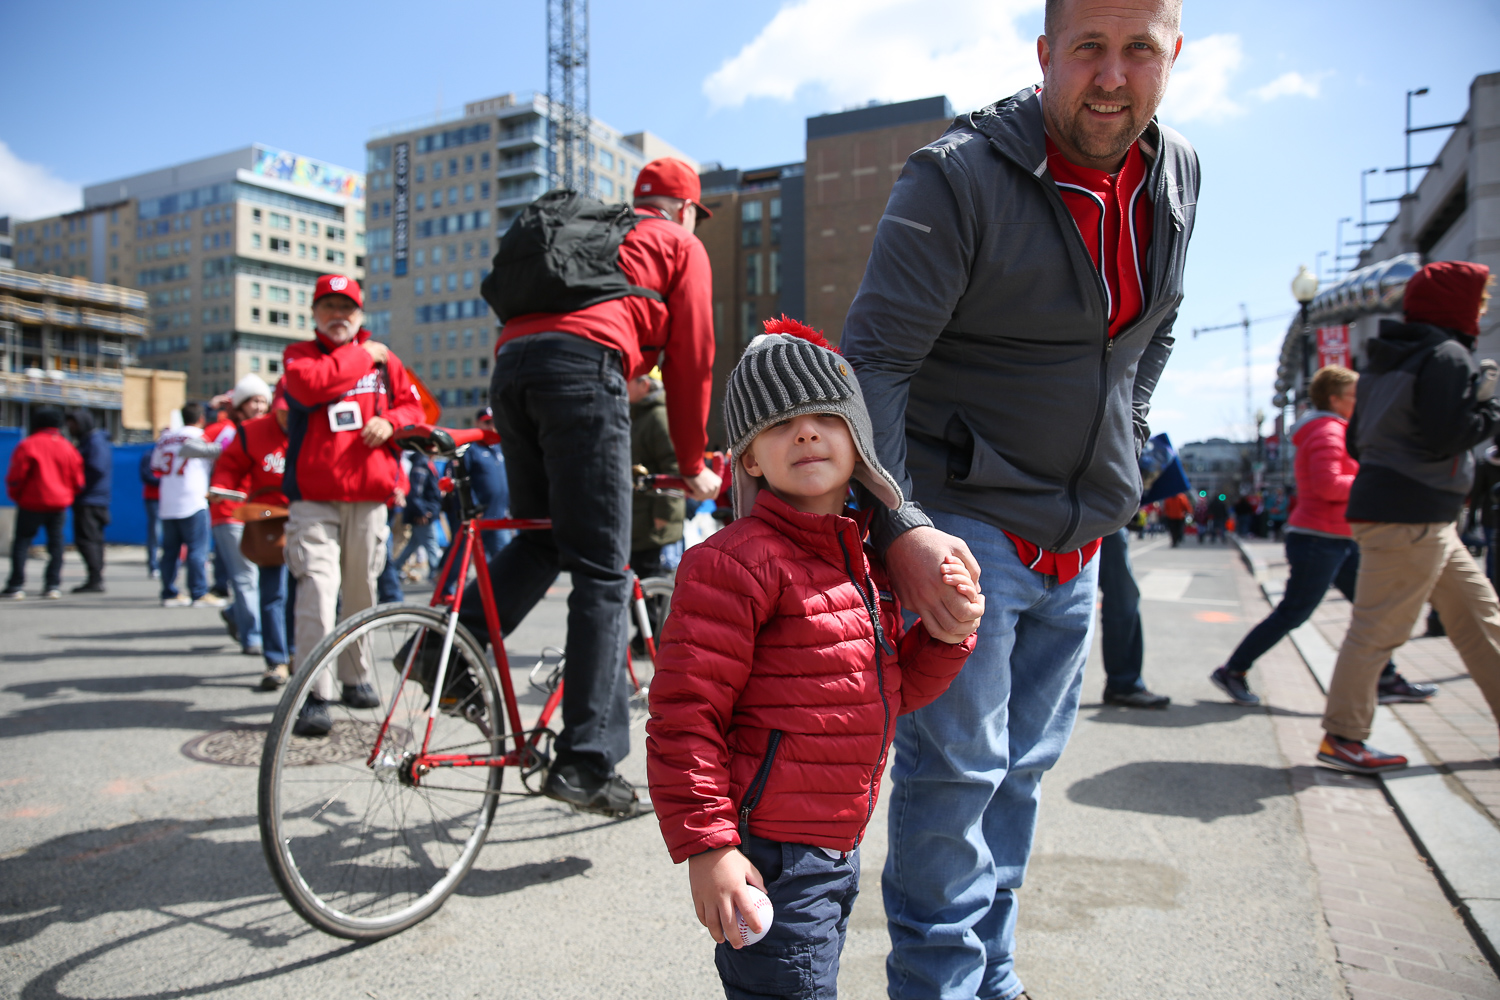 The Nats are back for another season and the fans showed up to support them during the home opener today. Here are just some of the fans that showed up to root for the home team. (Amanda Andrade-Rhoades/DC Refined)